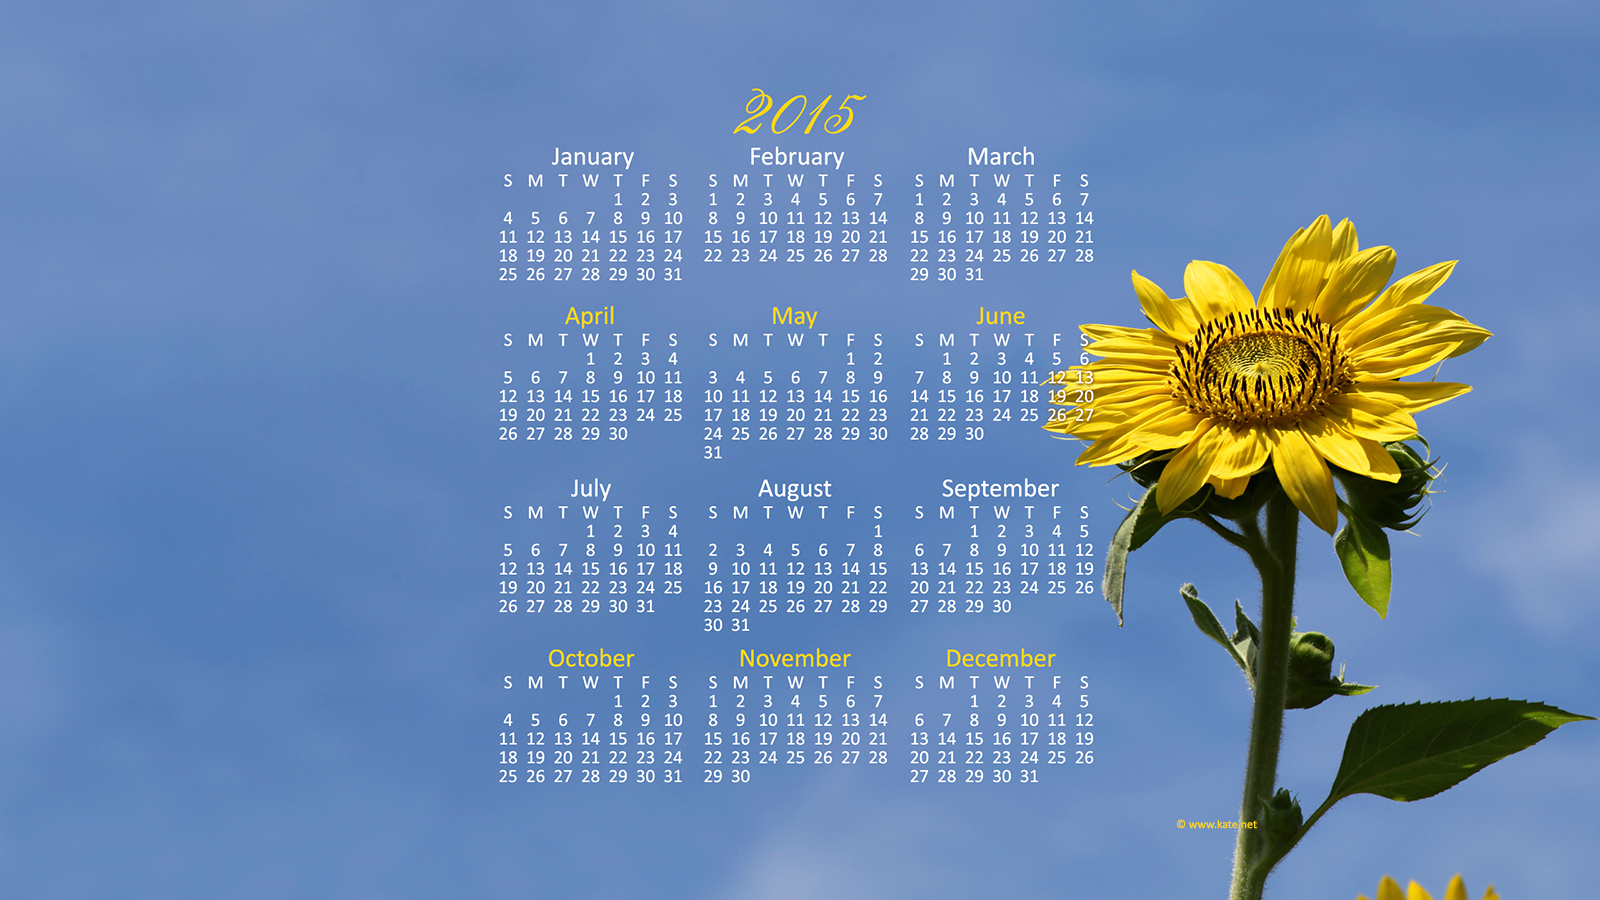 Full Year Calendar Wallpapers Yearly Calendar Backgrounds by Katenet 1600x900